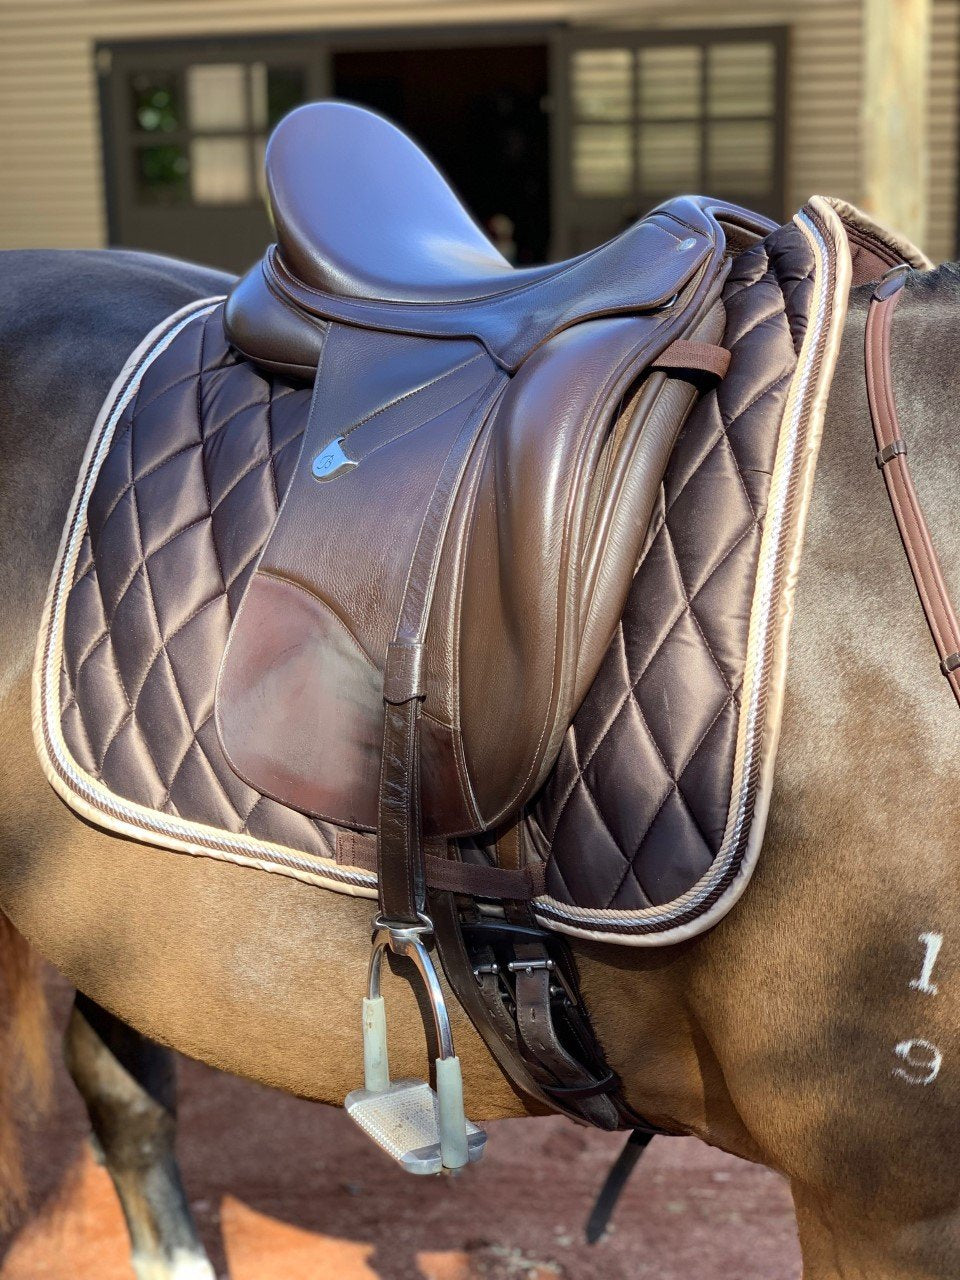 Biscotti Saddle Pad